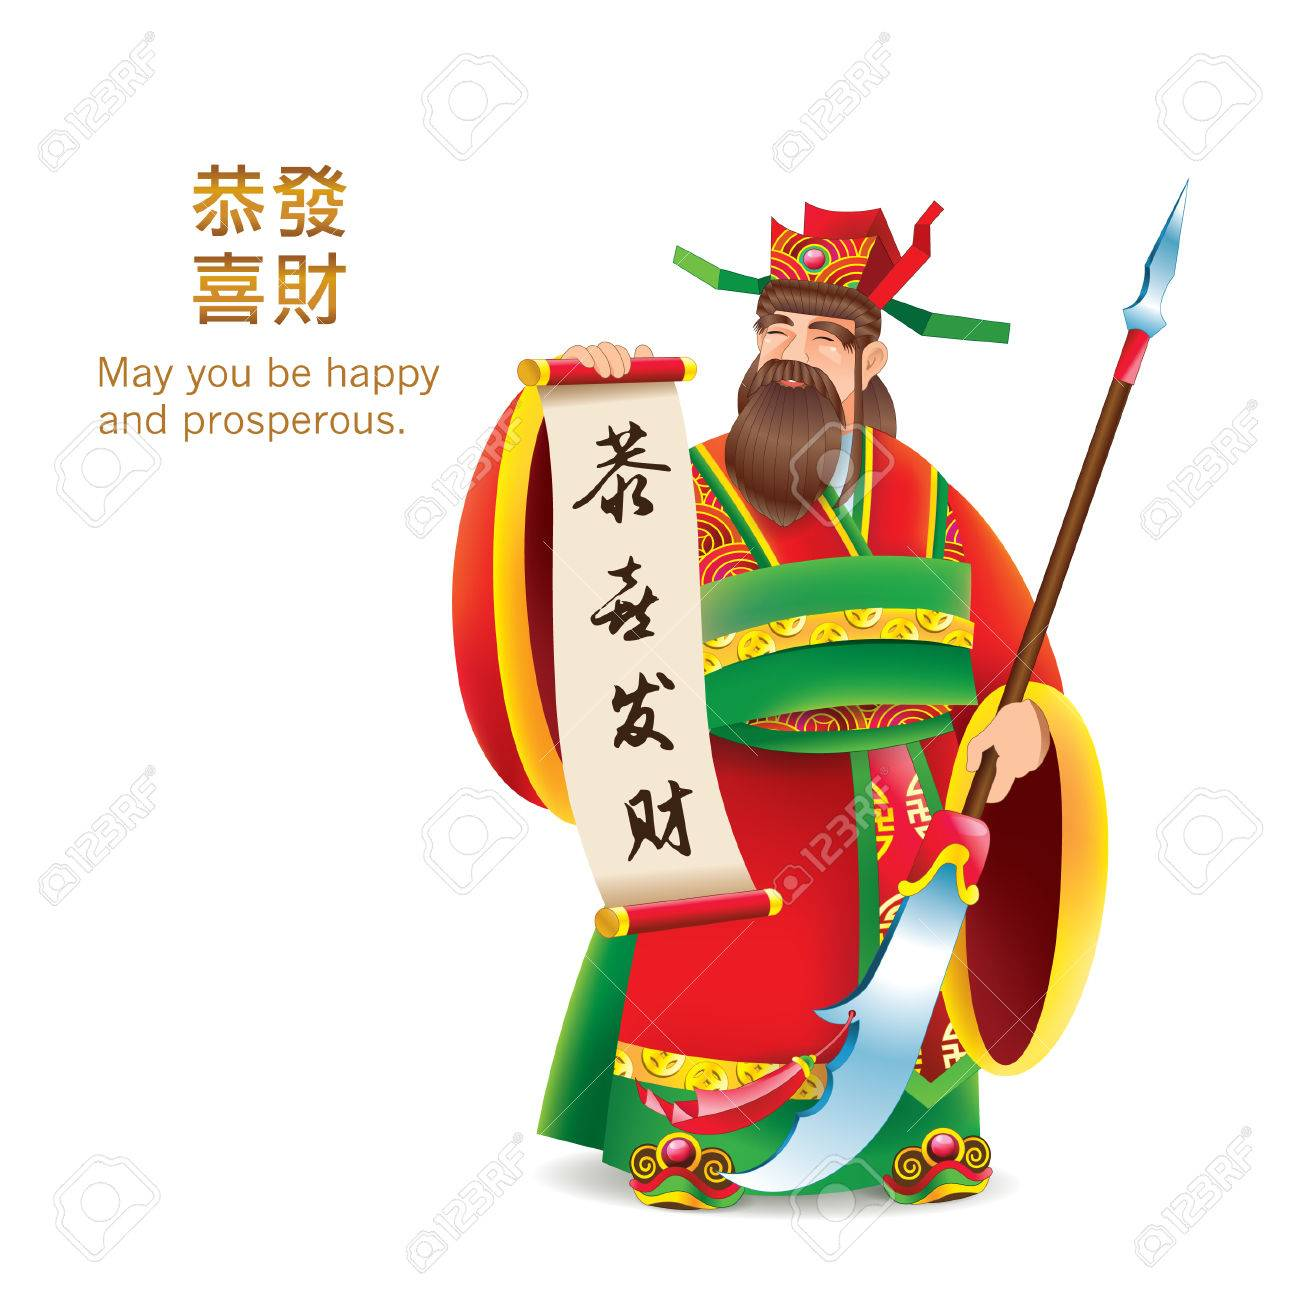 Chinese Character Military God Of Wealth Chinese Text Gong